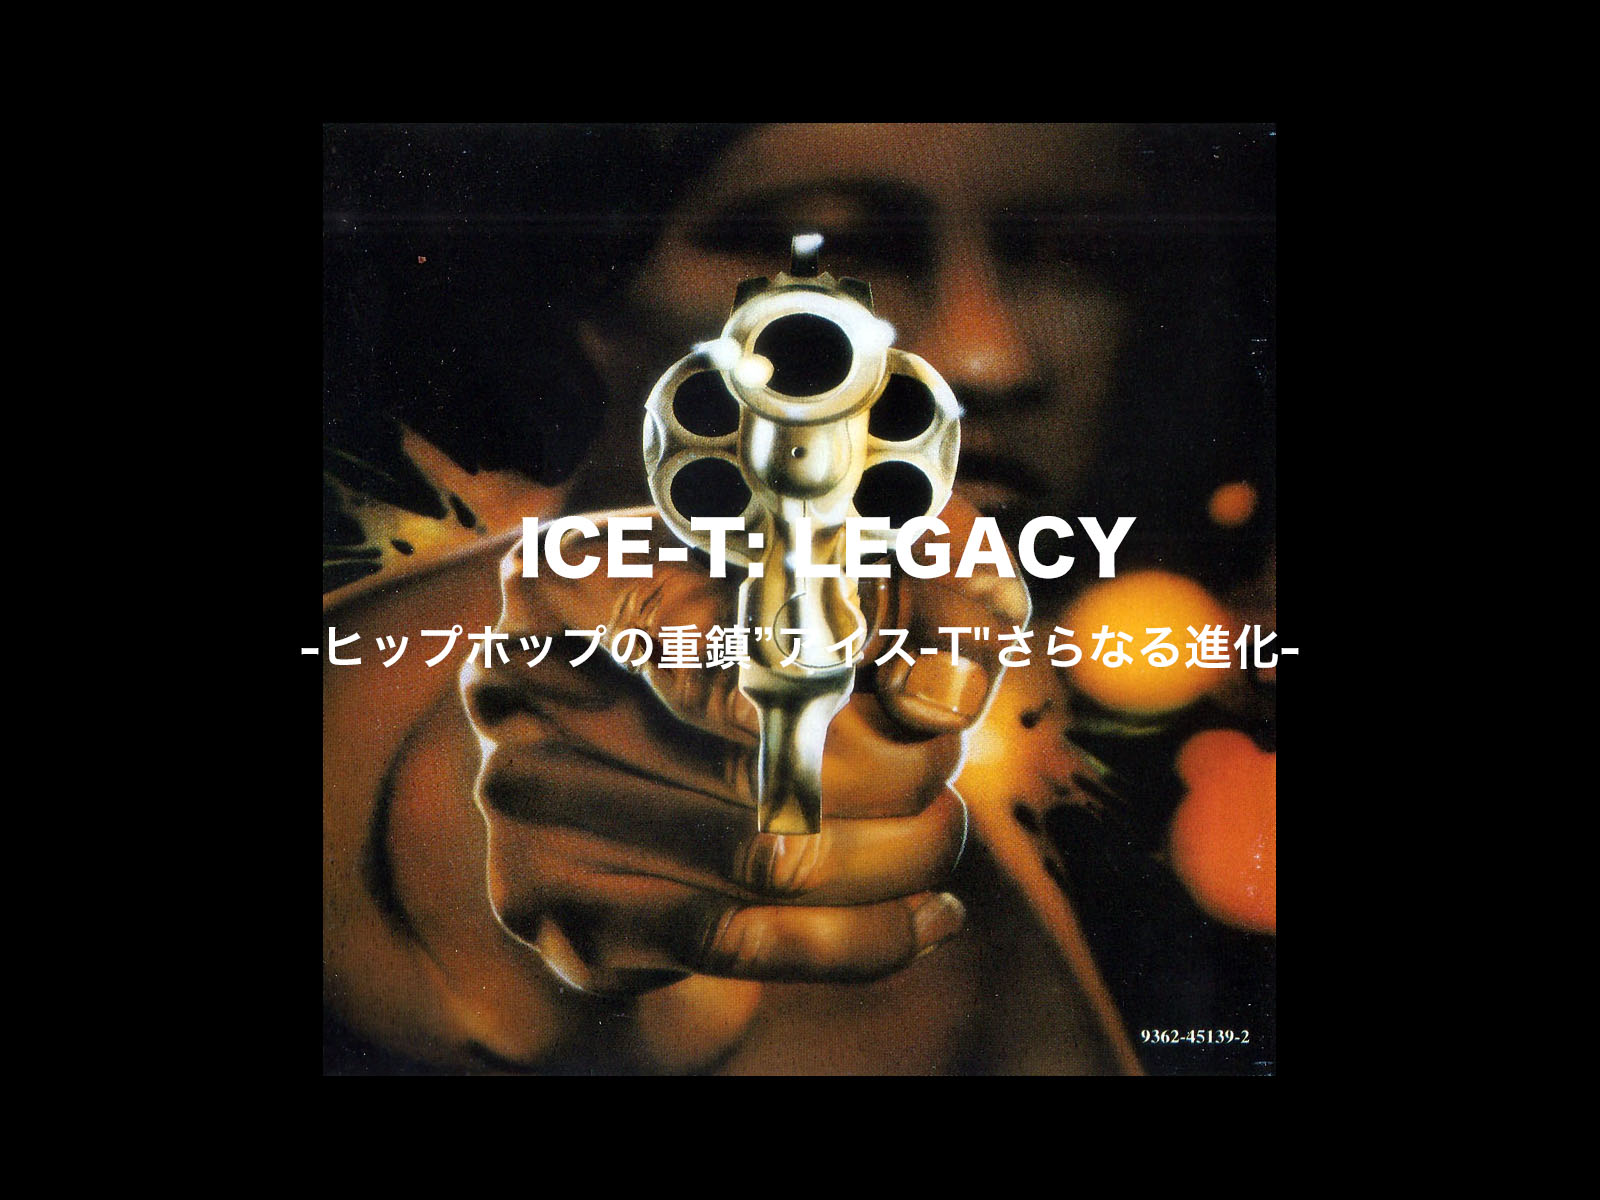 ICE-T: LEGACY